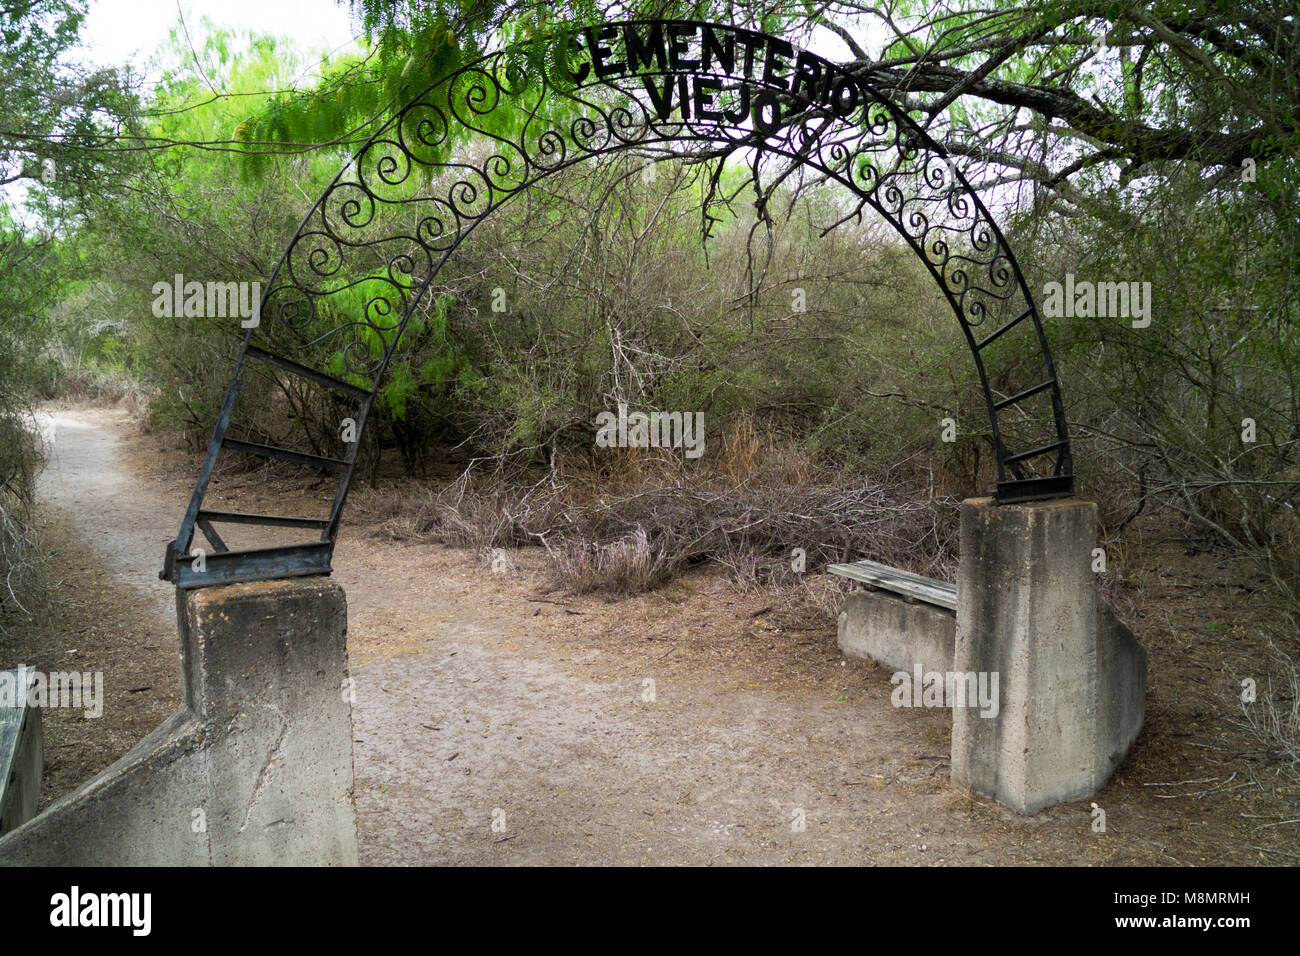 Gate to the historic cemetery for the family of Benino Leal on the property of the Santa Ana National Wildlife Refuge. - Stock Image